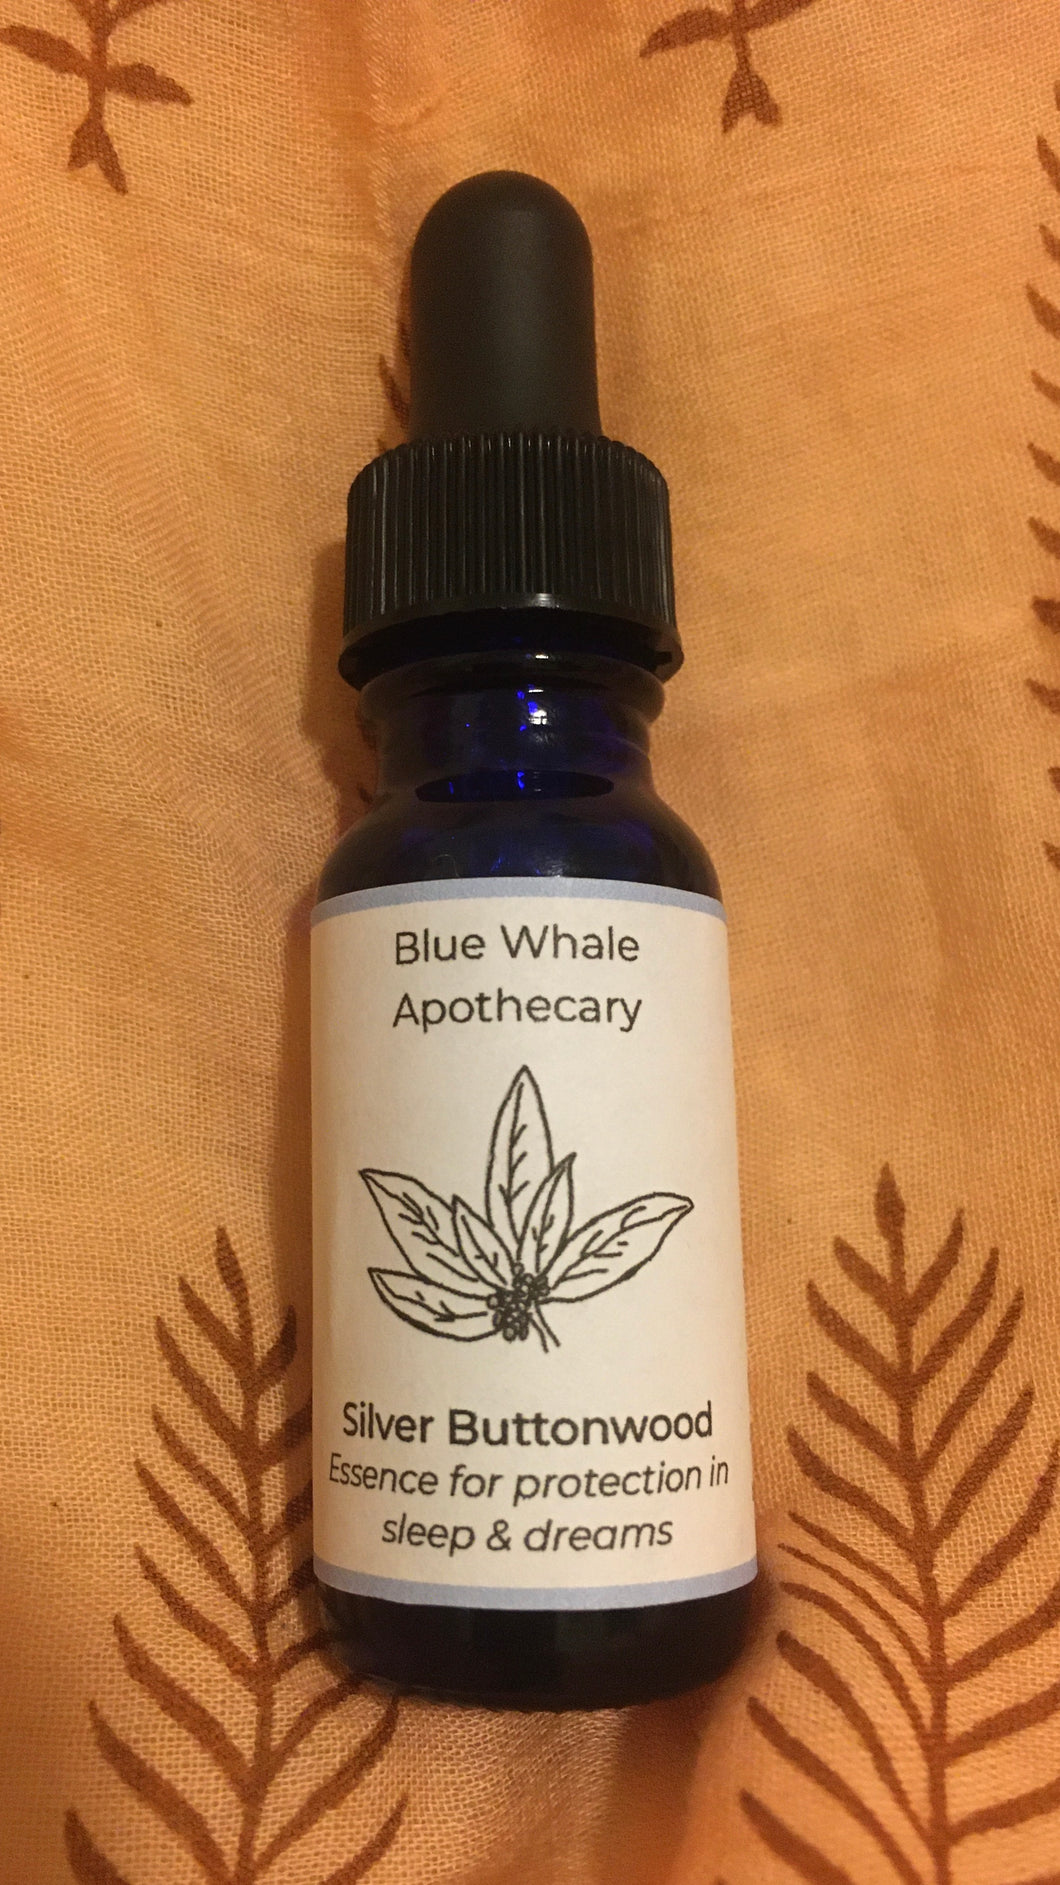 Silver Buttonwood Essence